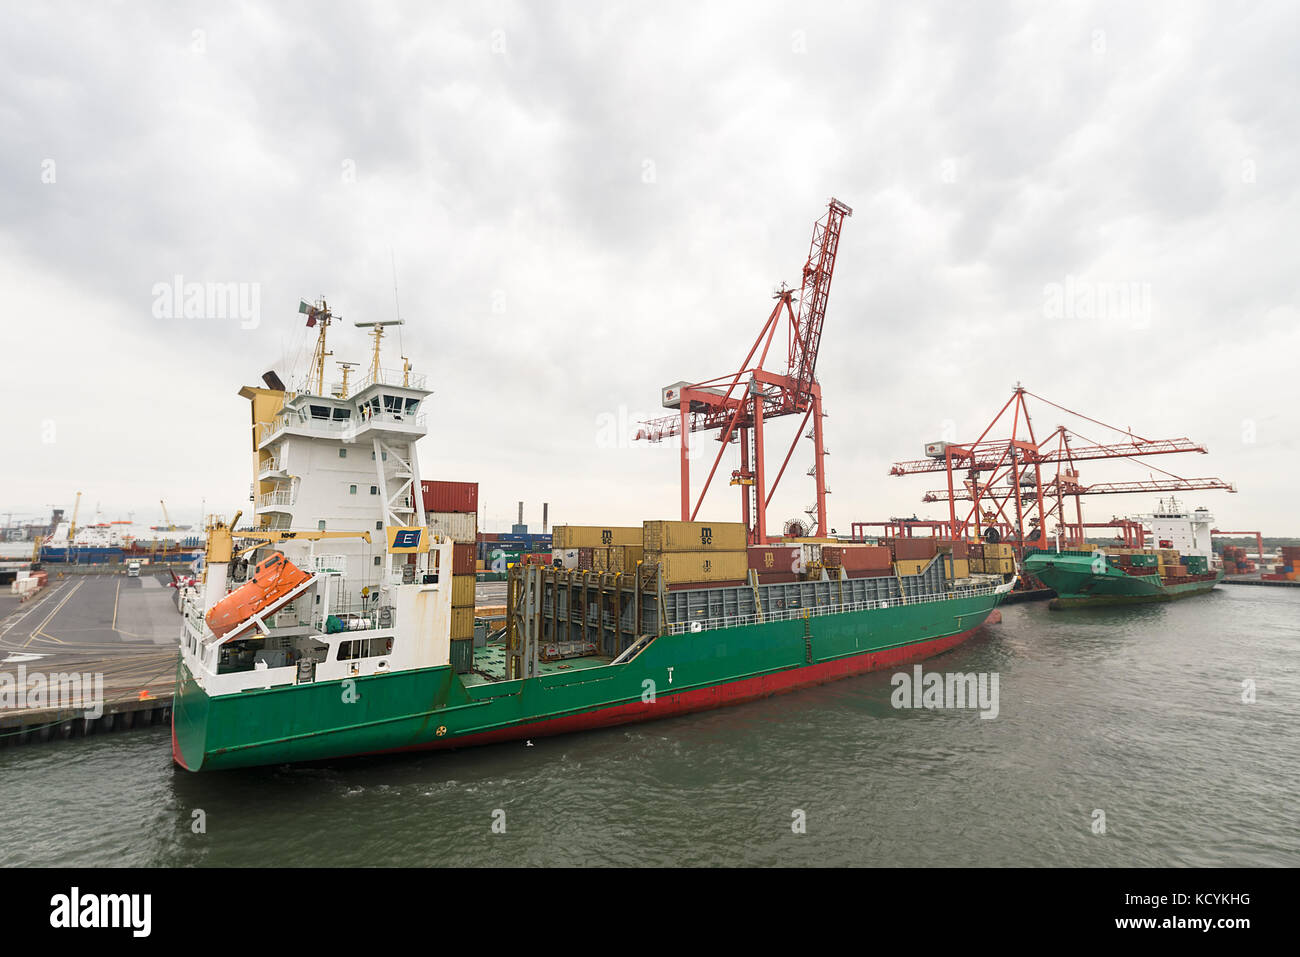 Two large container ships being loaded with shipping containers at Dublin docks. - Stock Image